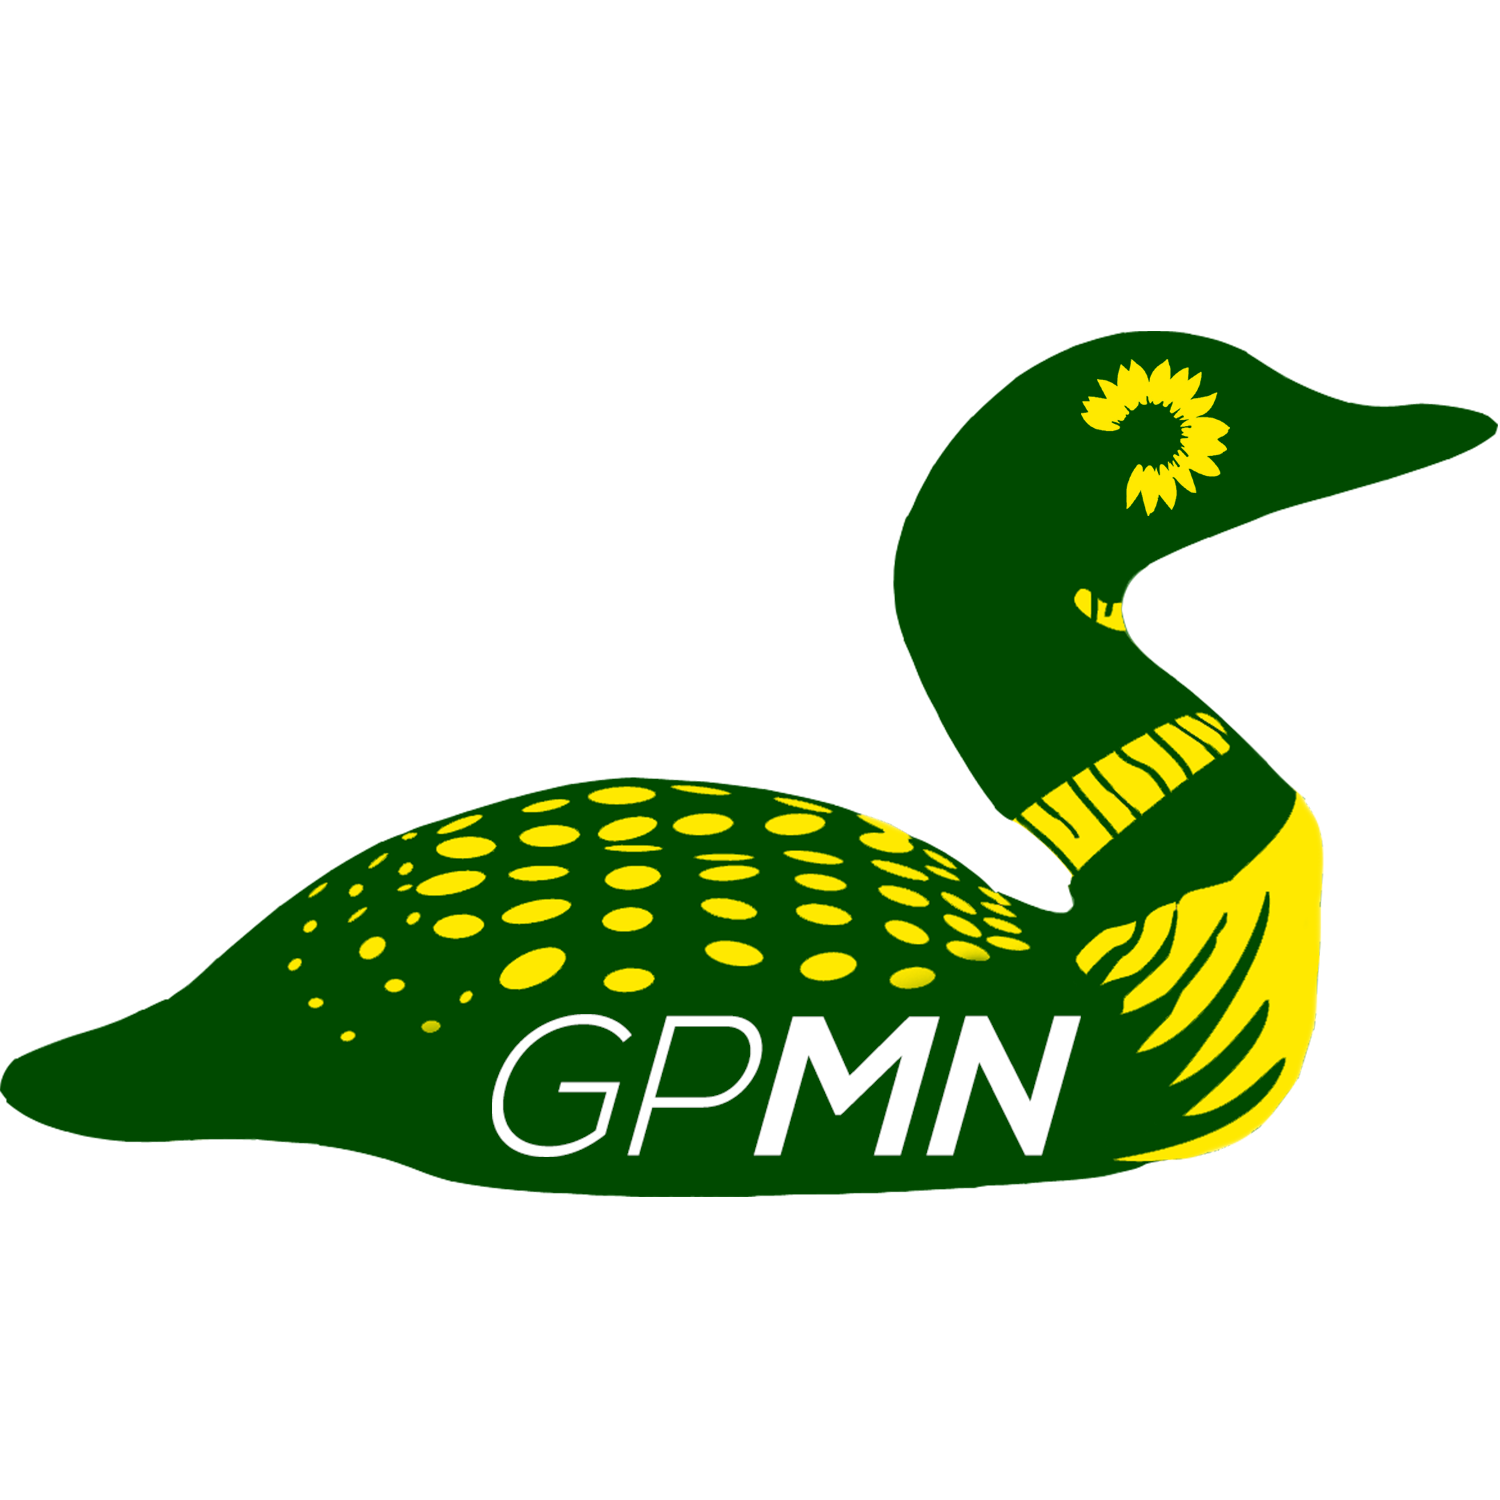 The Green Party of Minnesota (GPMN) is a grassroots organization dedicated to the values of the international Green movement. The GPMN strives to build a society in which all can lead full and productive lives in harmony with each other and with nature. The movement is inspired by the interrelated    Four Pillars    of    Ecological Wisdom   ,    Nonviolence   ,    Social and Economic Justice    and    Grassroots Democracy   .